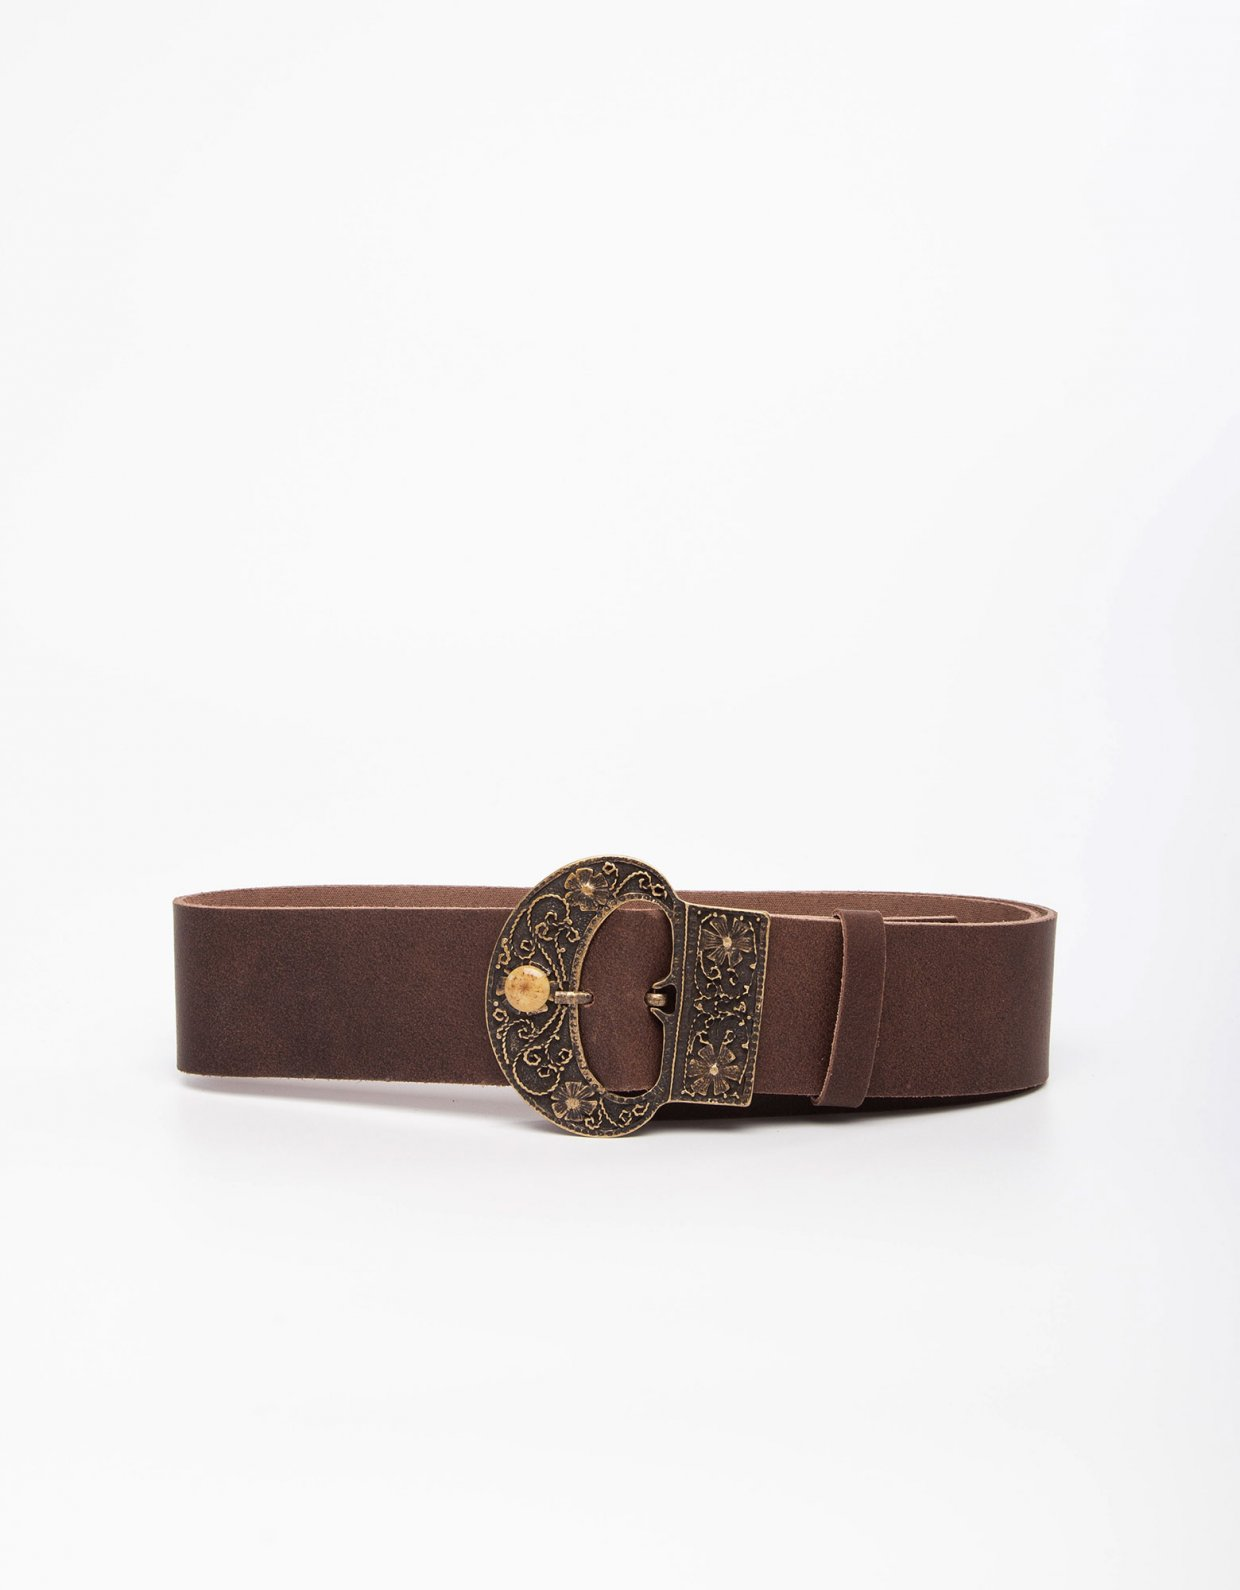 Individual Art Leather Darling brown belt